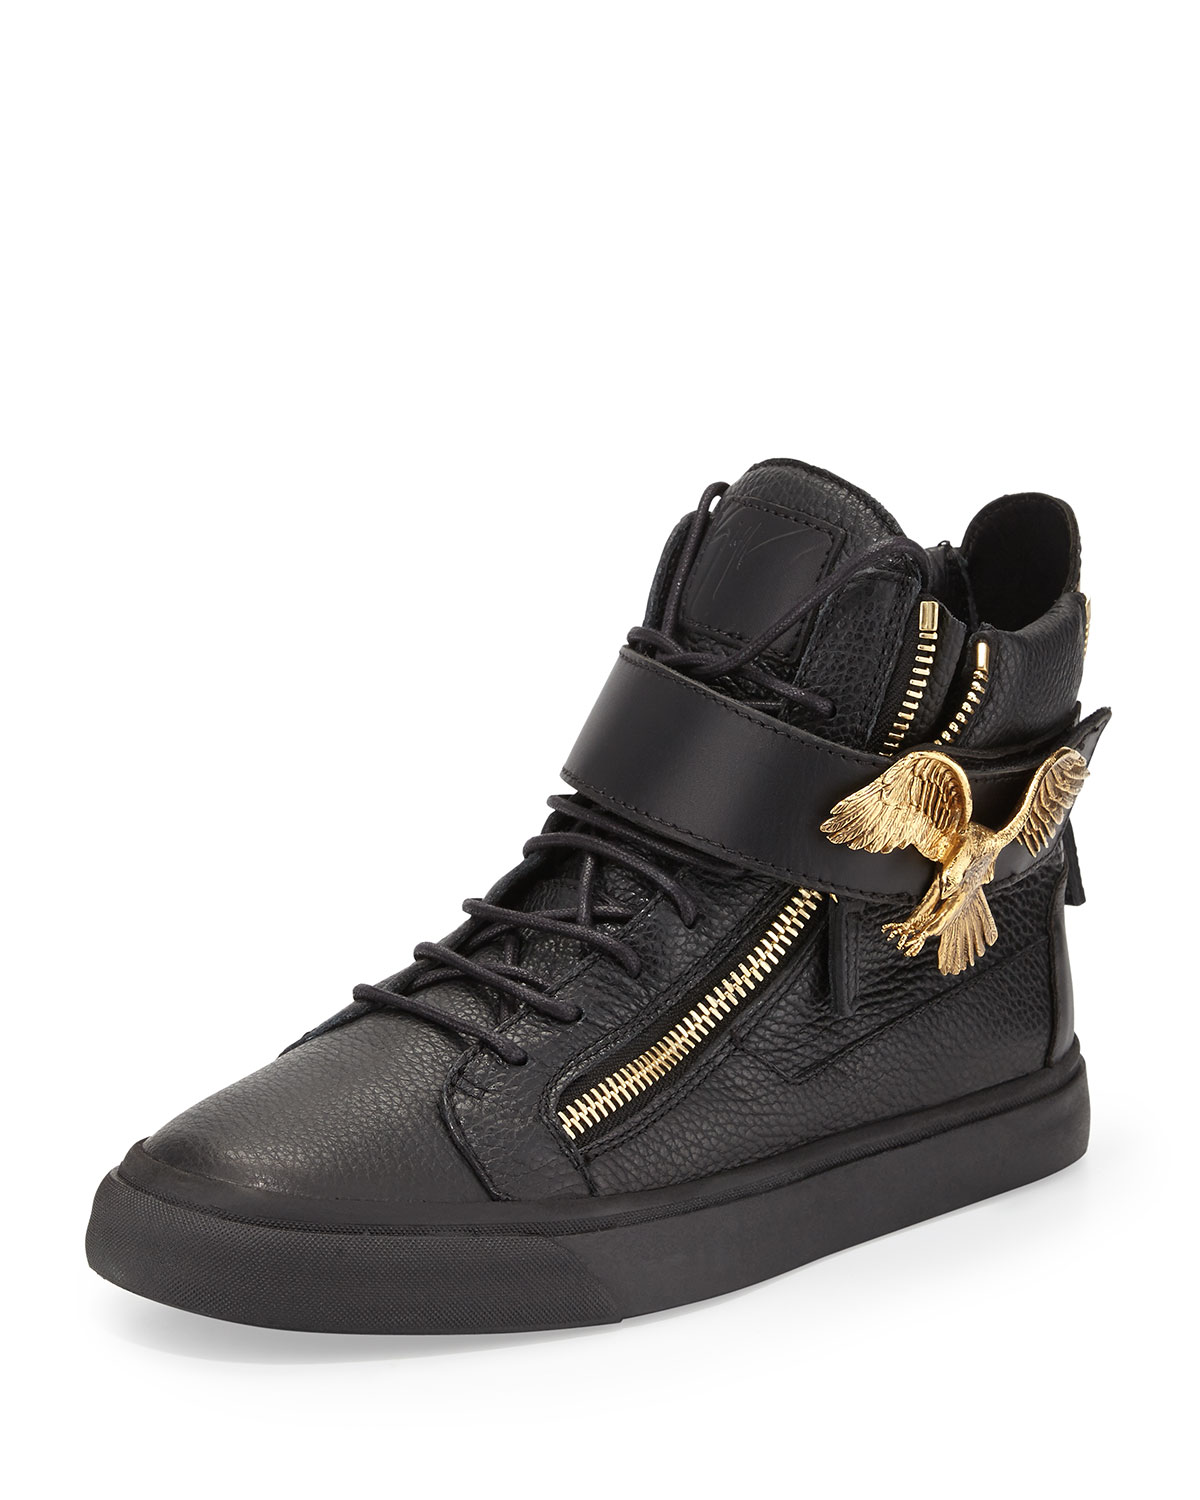 Giuseppe Zanotti Men's Leather High-Top Sneaker with Eagle, Black